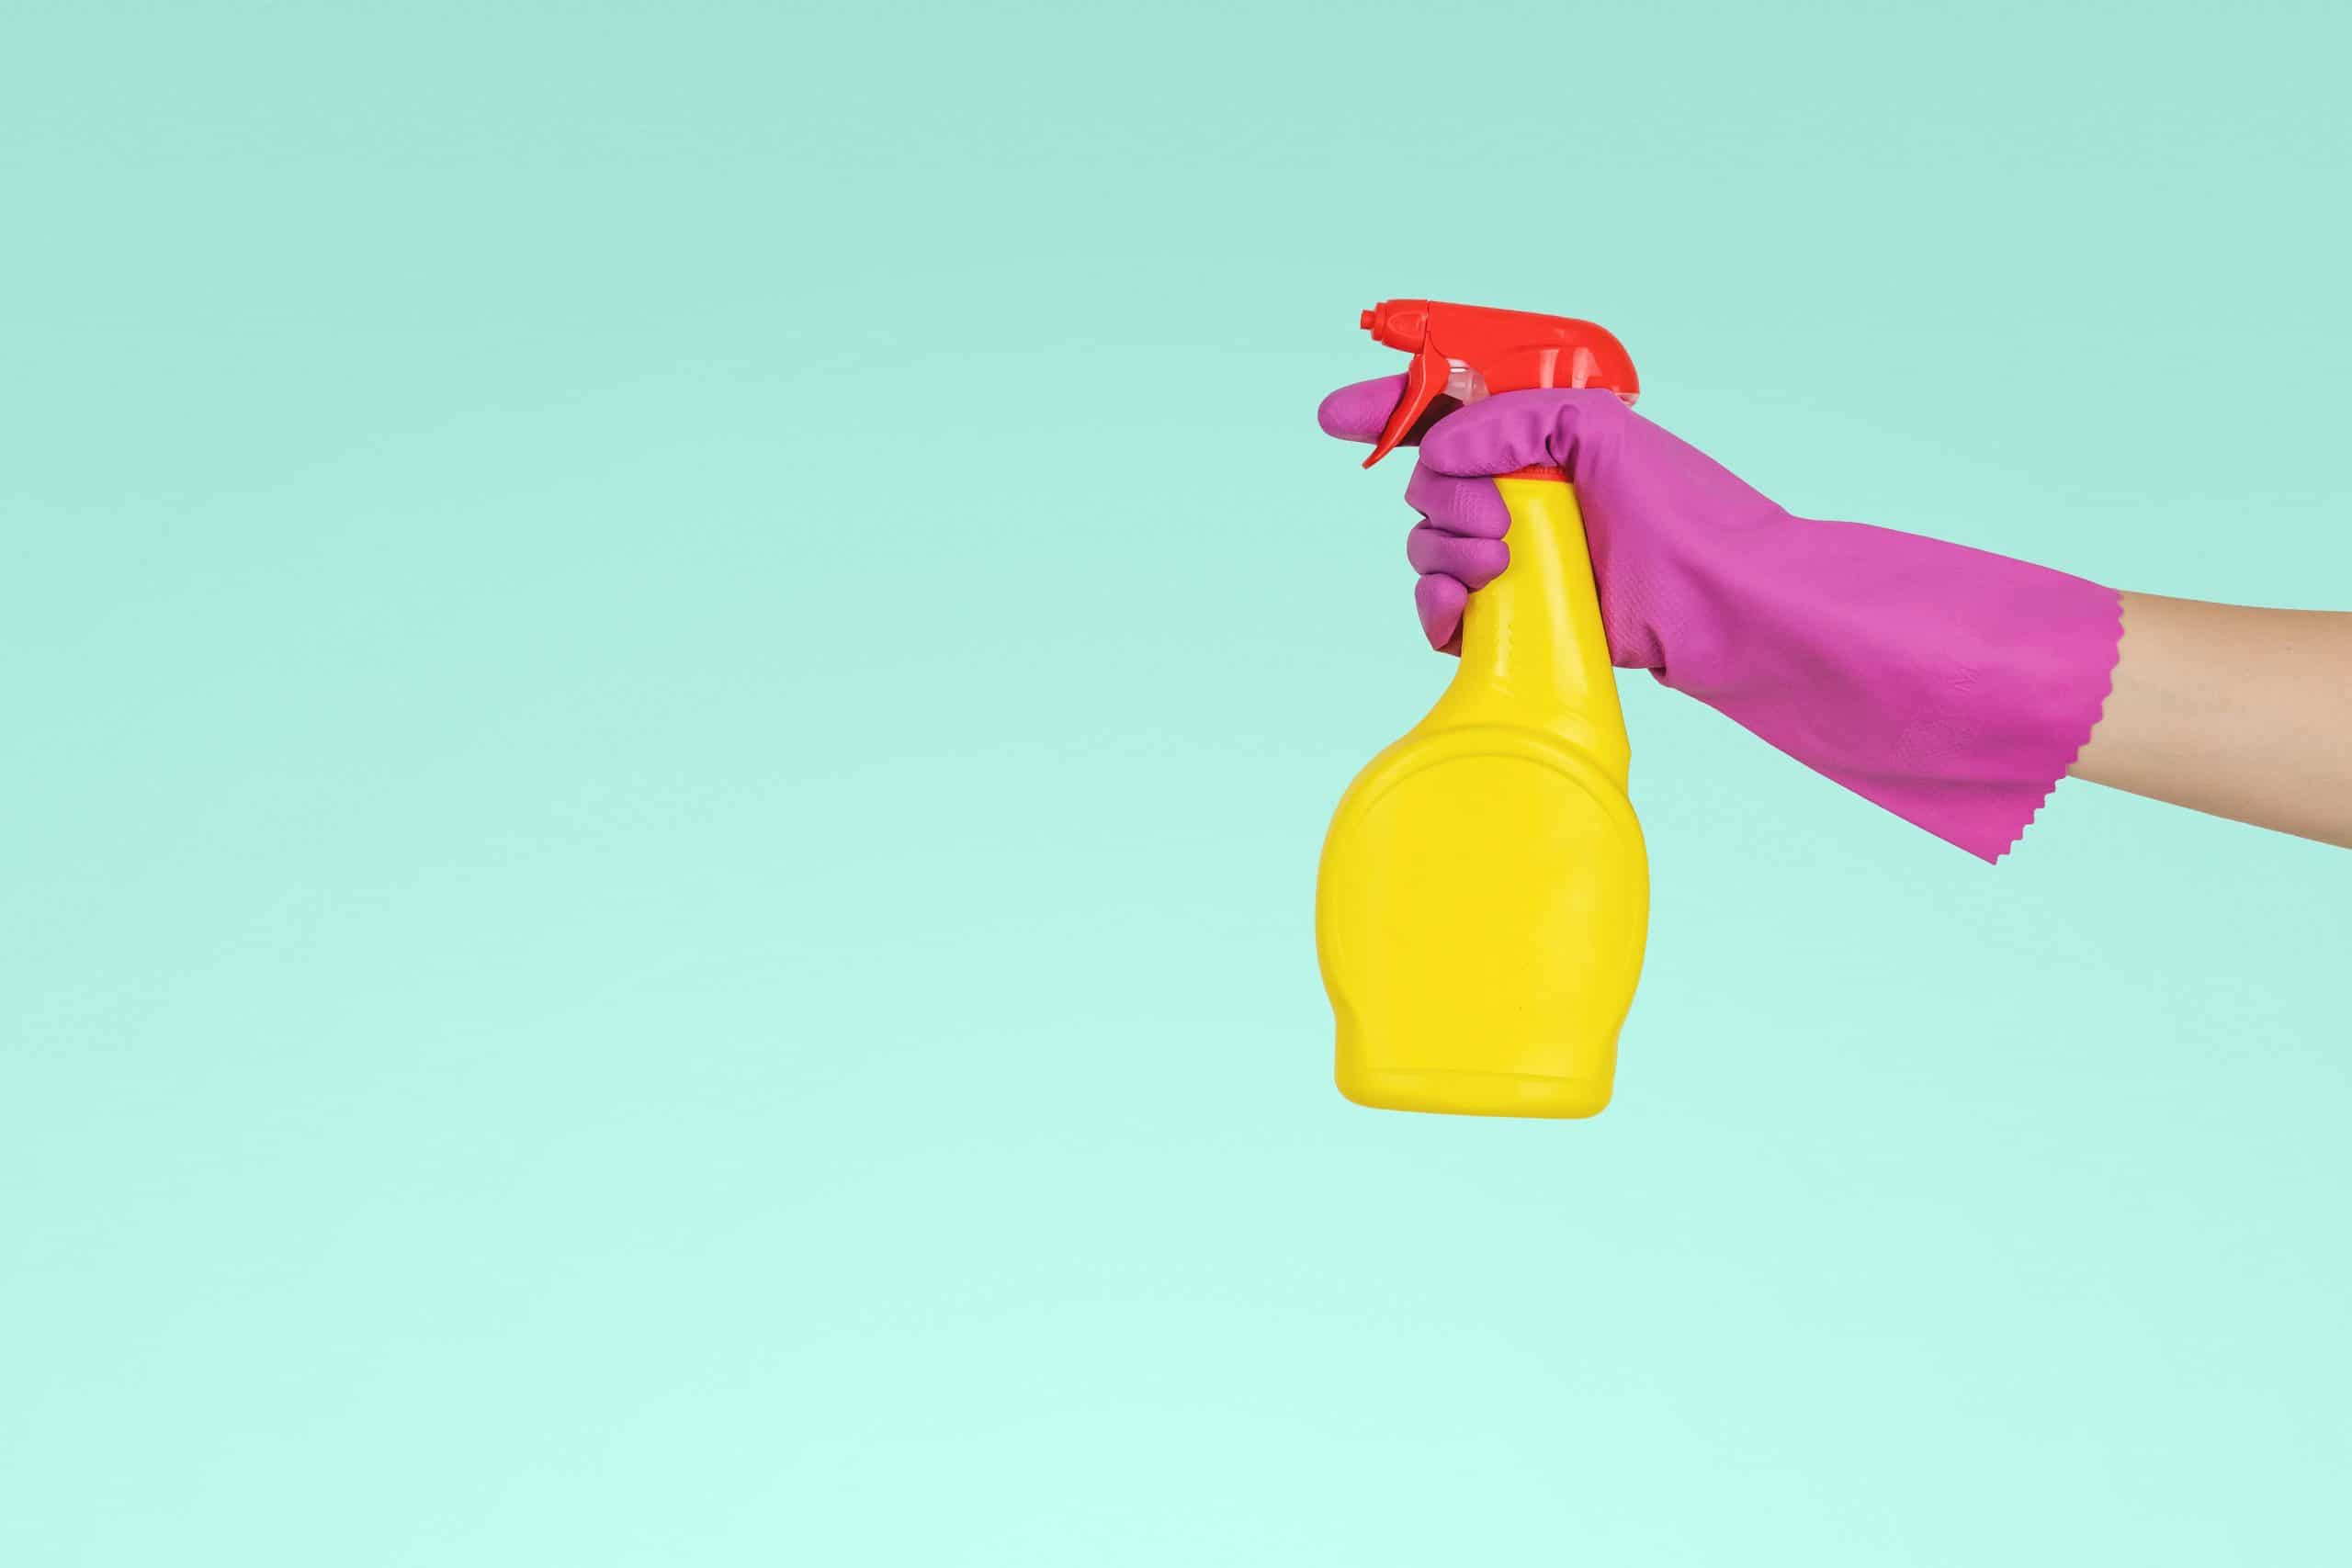 person holding yellow plastic spray bottle of cleaning products